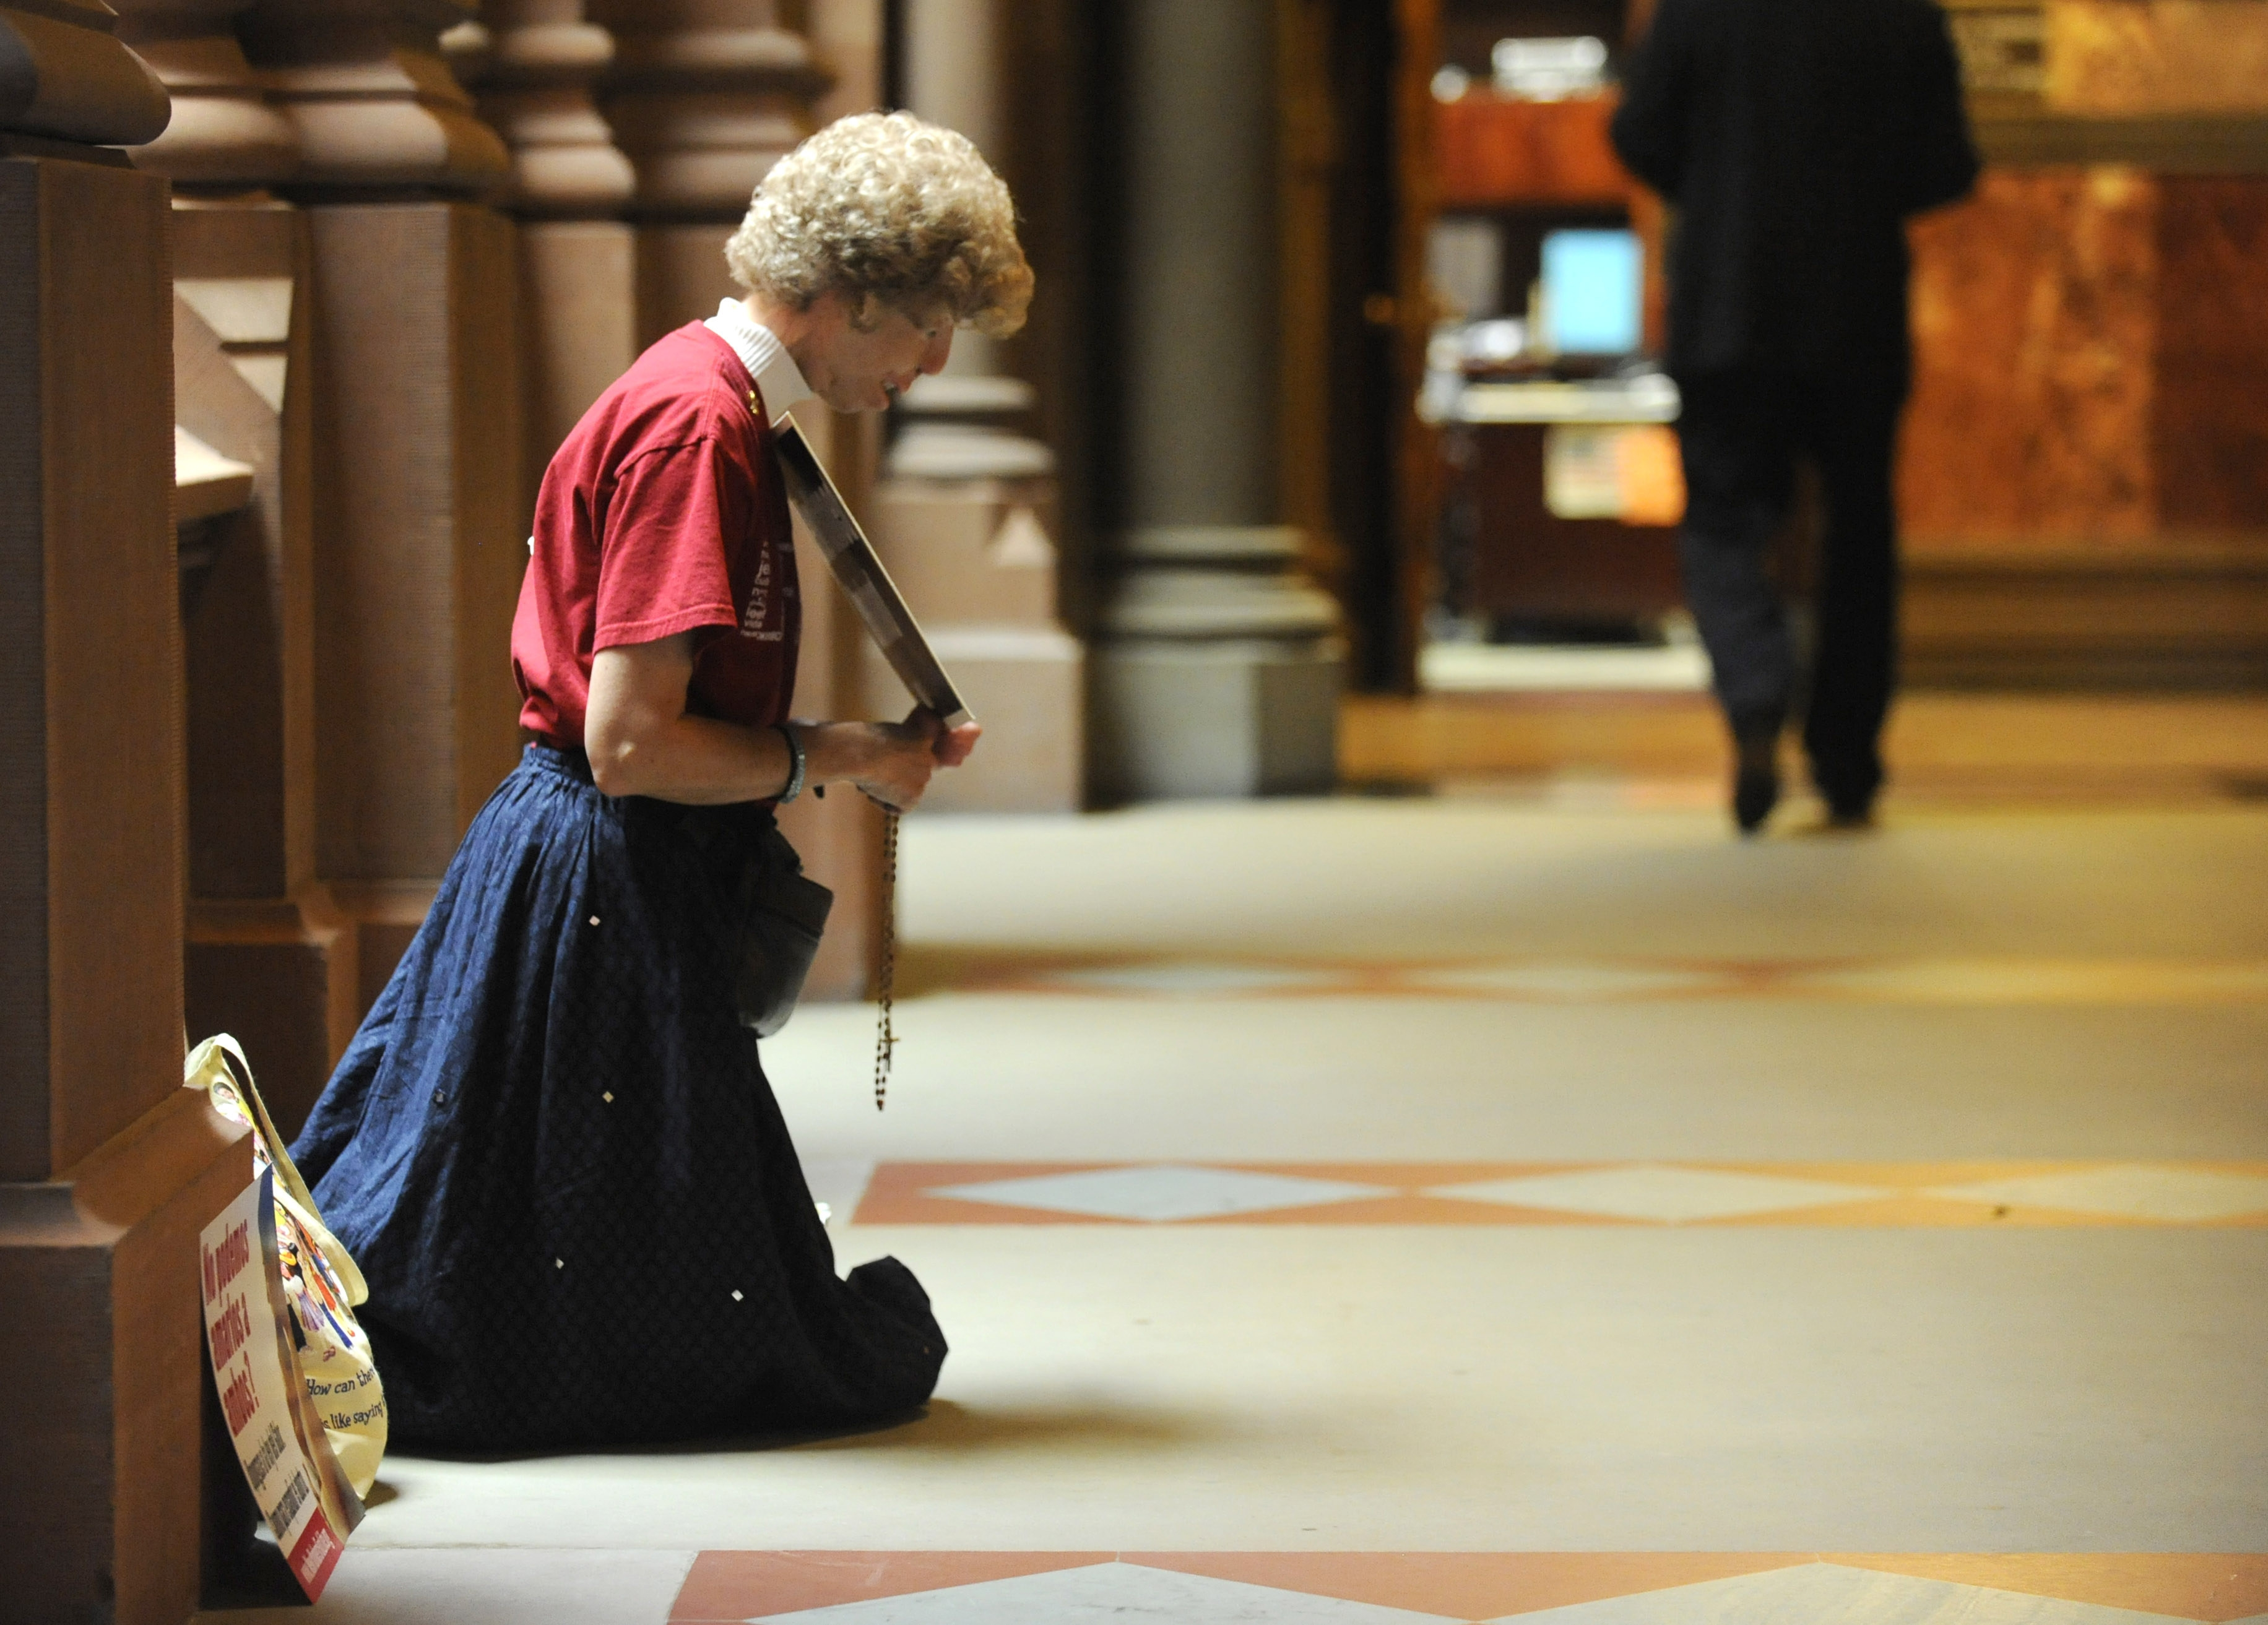 Sheila Blasch of Albany demonstrated her opposition to the abortion bill by praying outside the State Senate Chamber in Albany last week. (Associated Press)